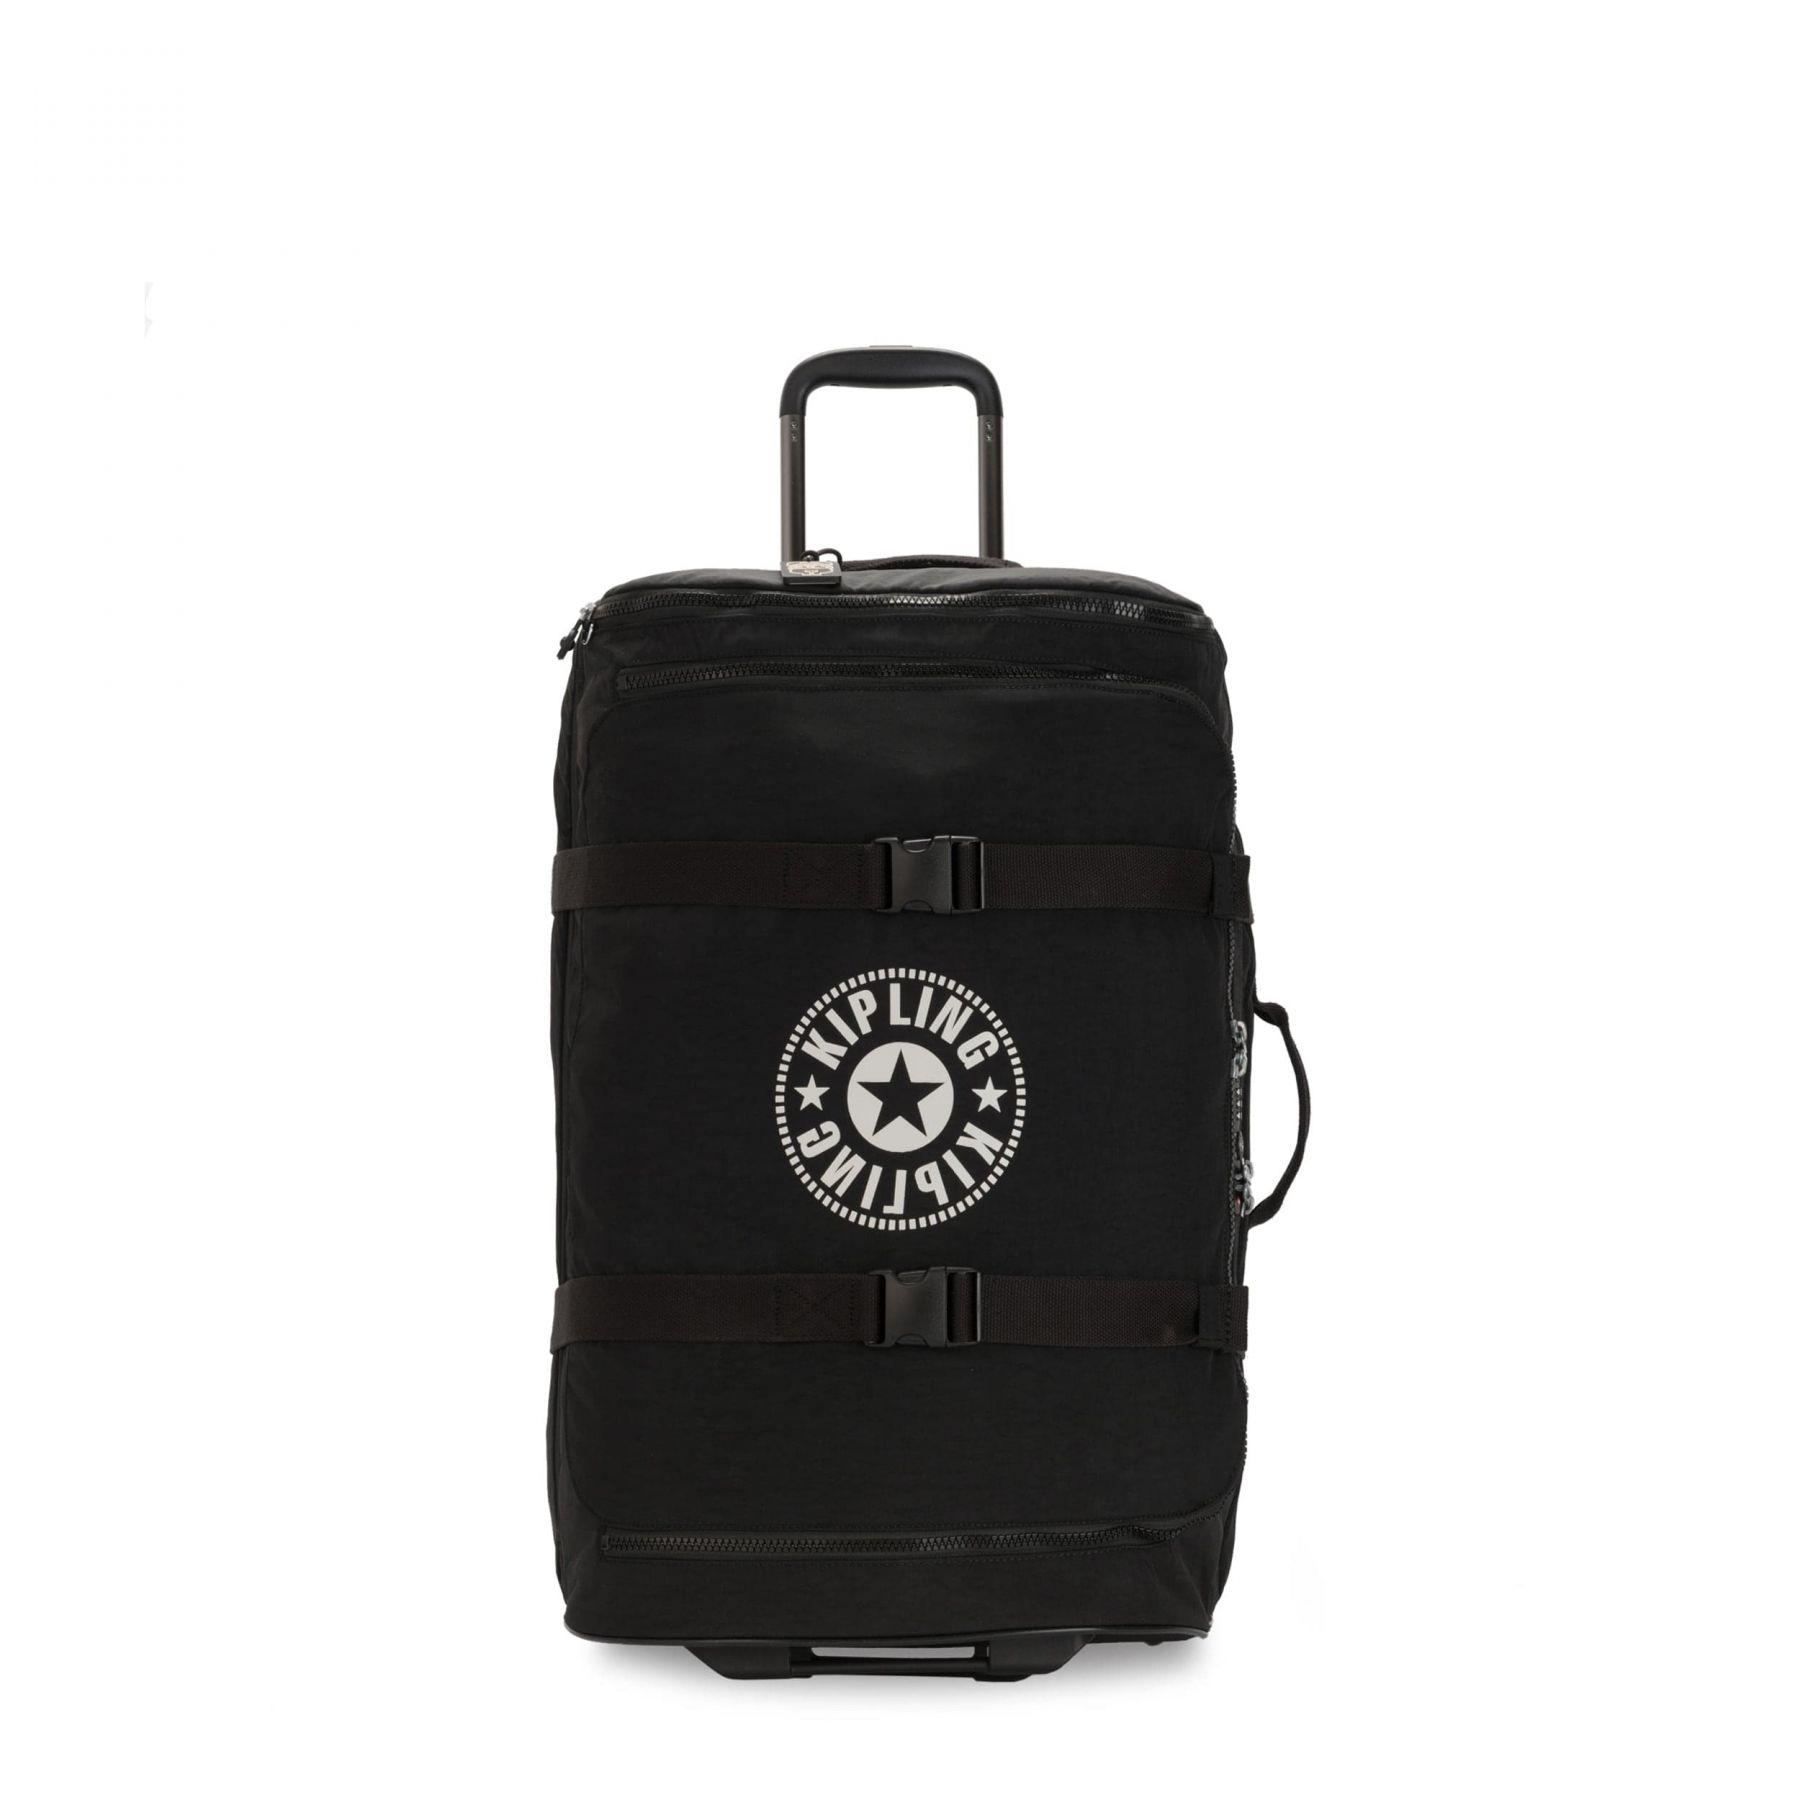 DISTANCE M Latest Luggage by Kipling - Front view